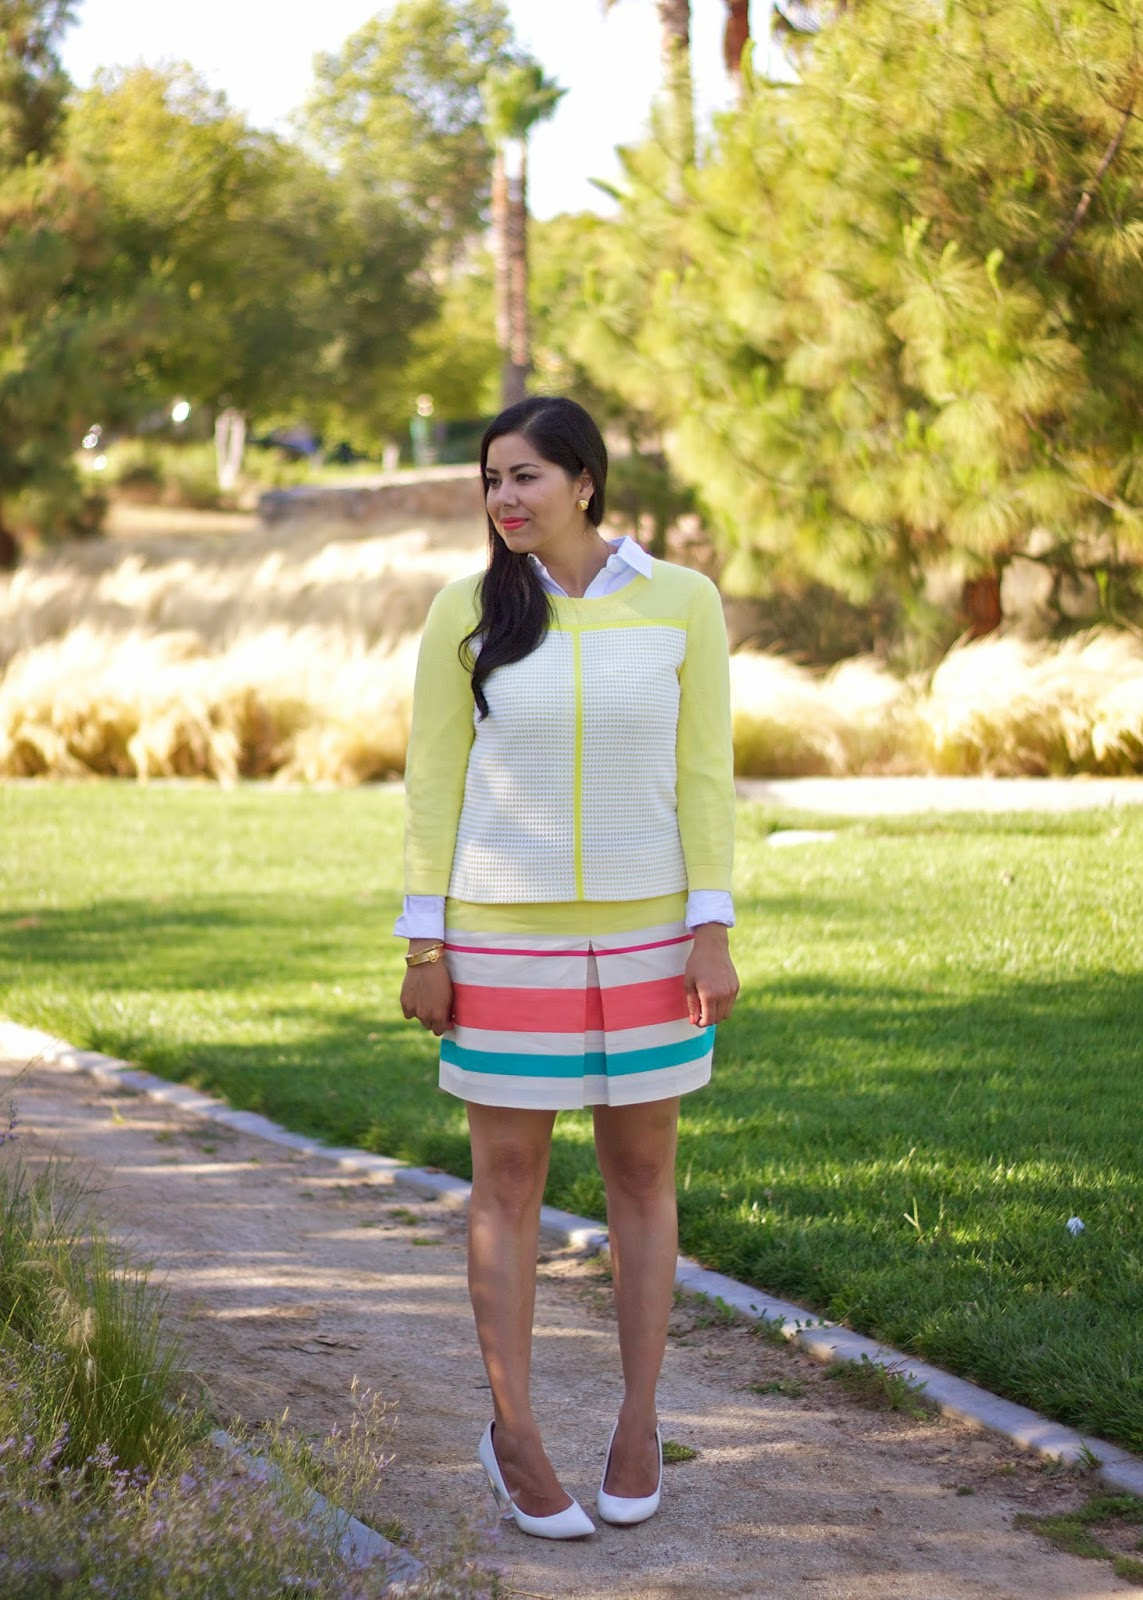 Tommy Hilfiger Yellow and Orange Preppy Look, Tommy HIlfiger fashion blogger, Tommy Hilfiger Fashion Valley